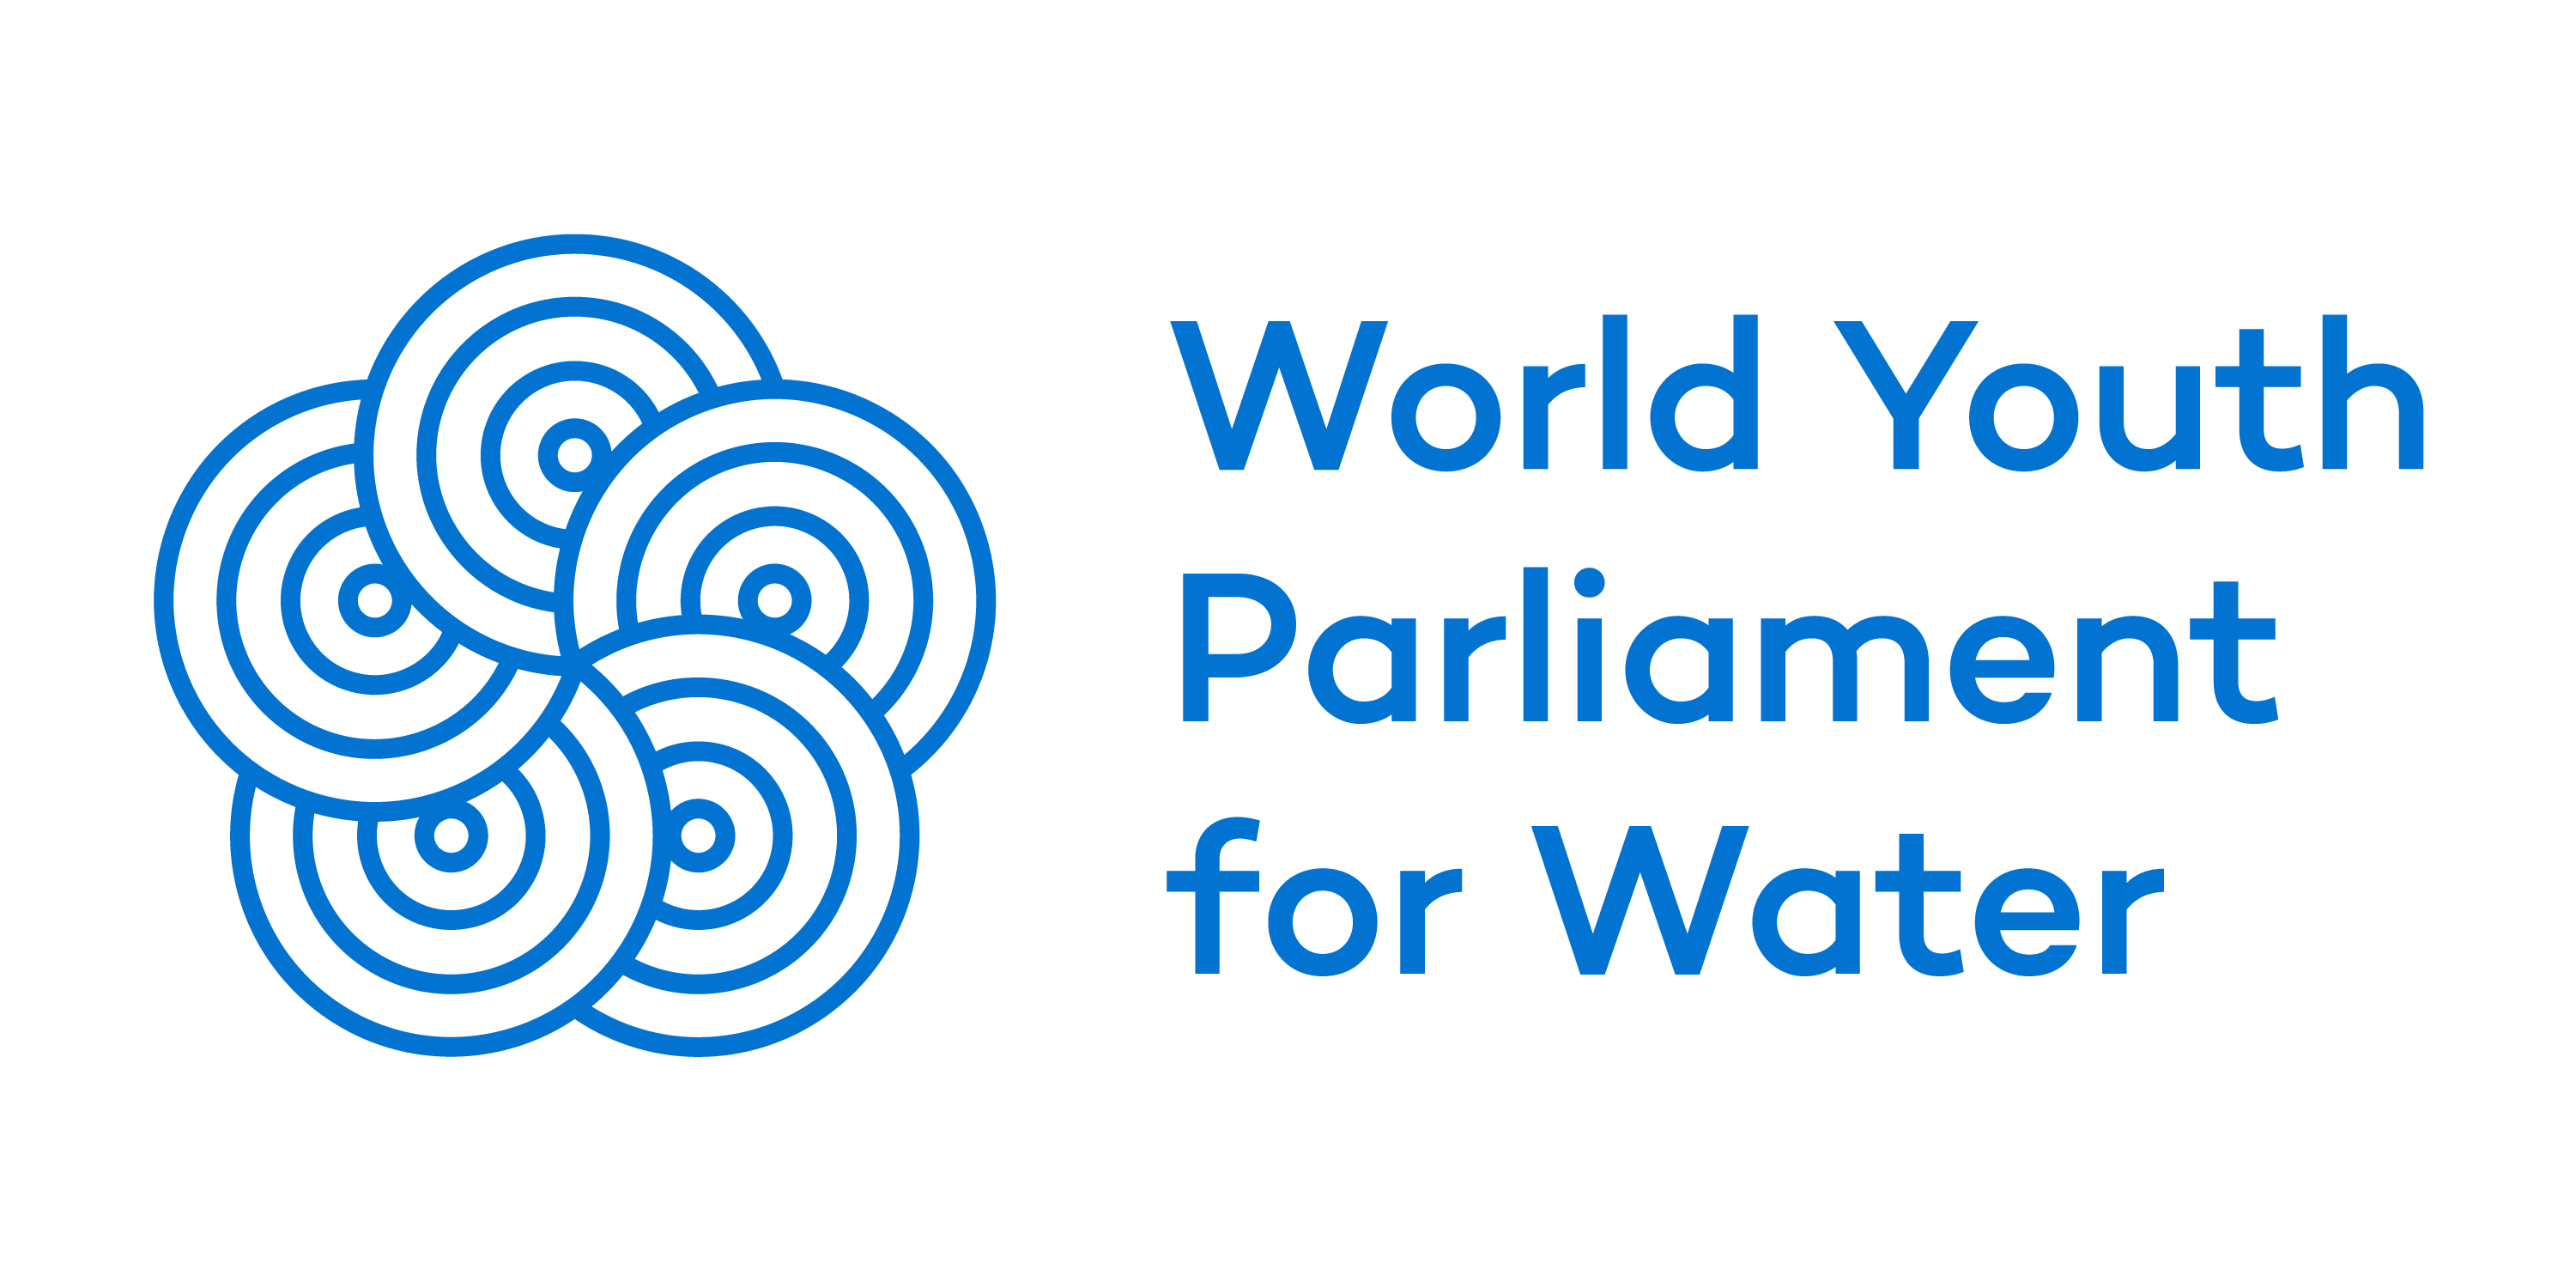 5th General Assembly - World Youth Parliament for Water